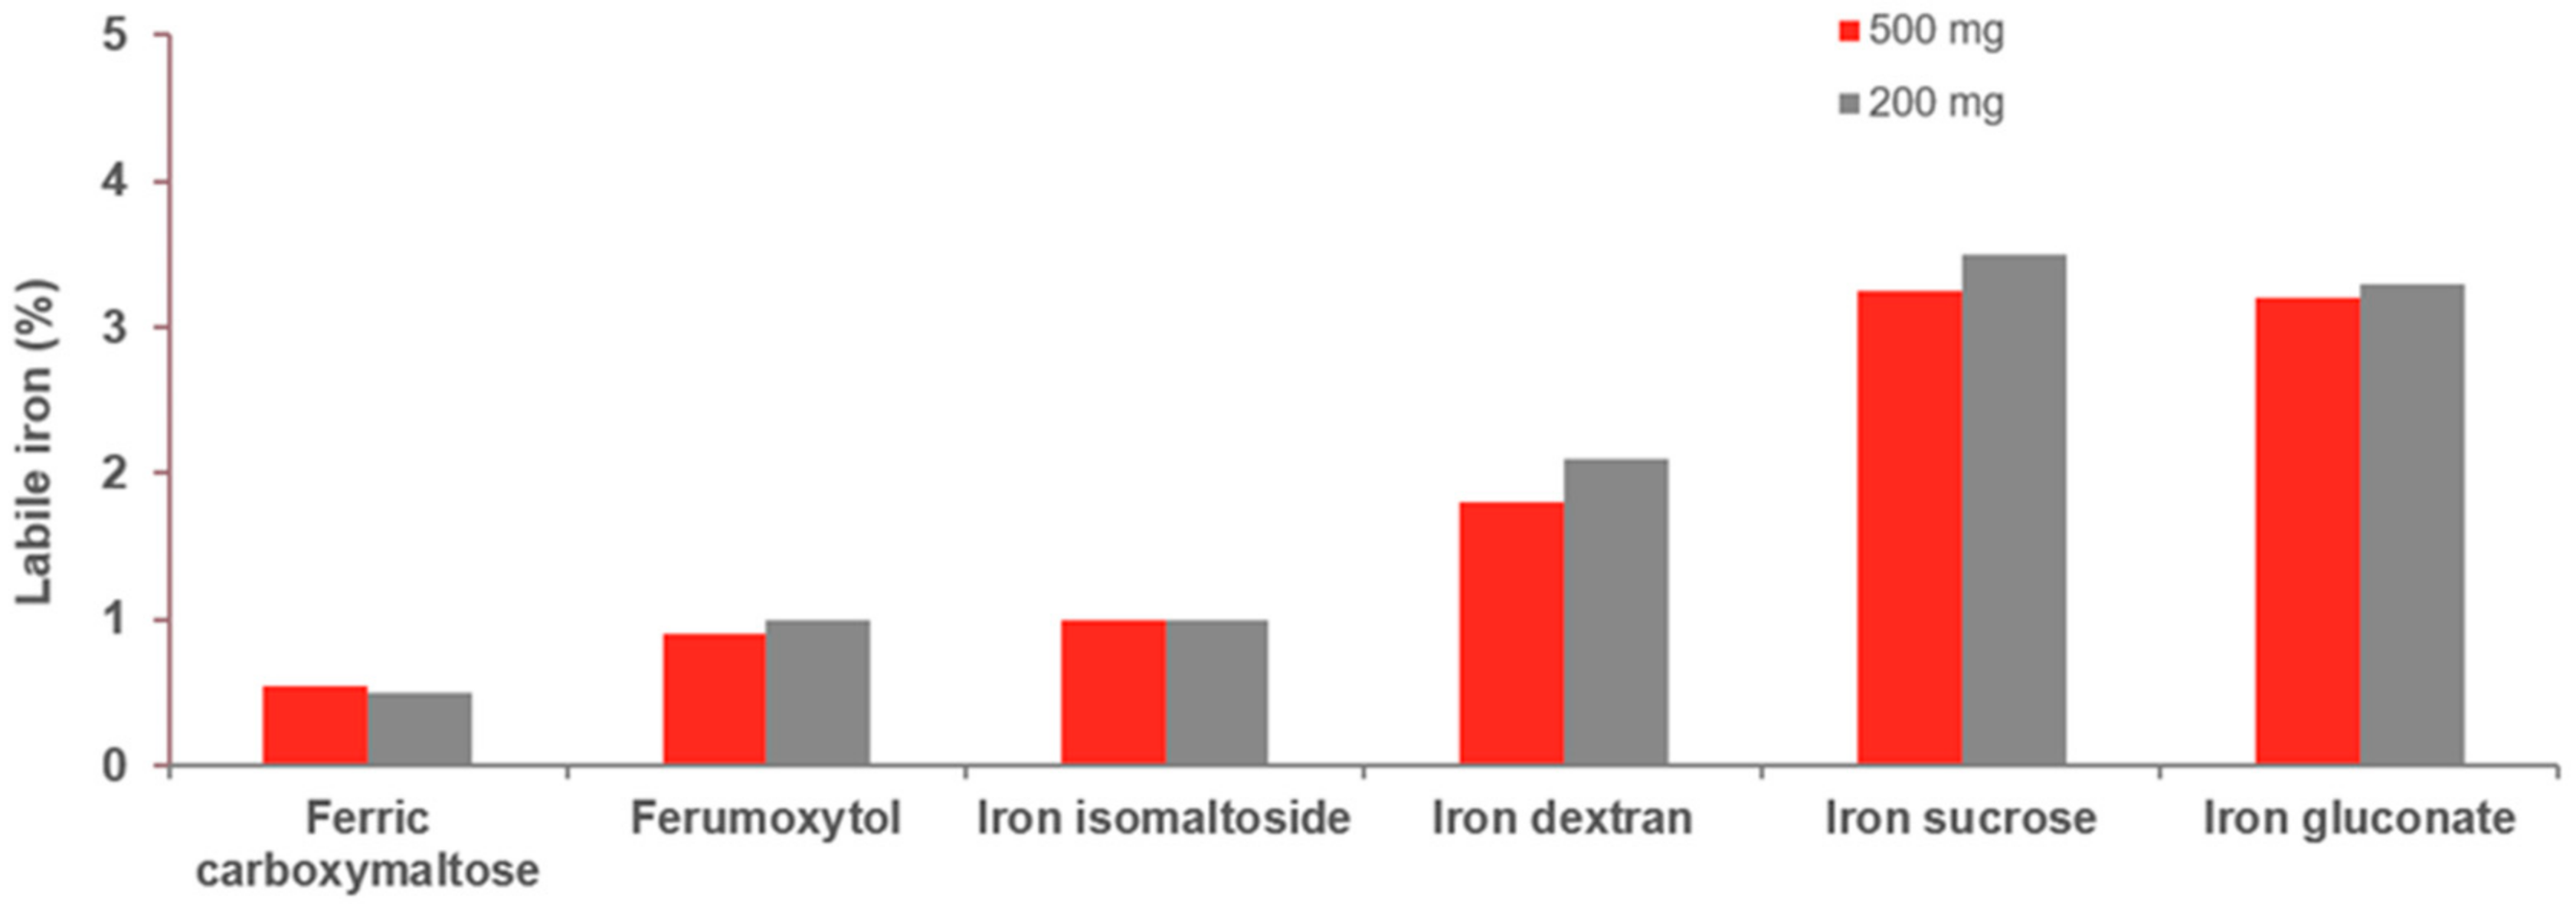 Intravenous Irons: From